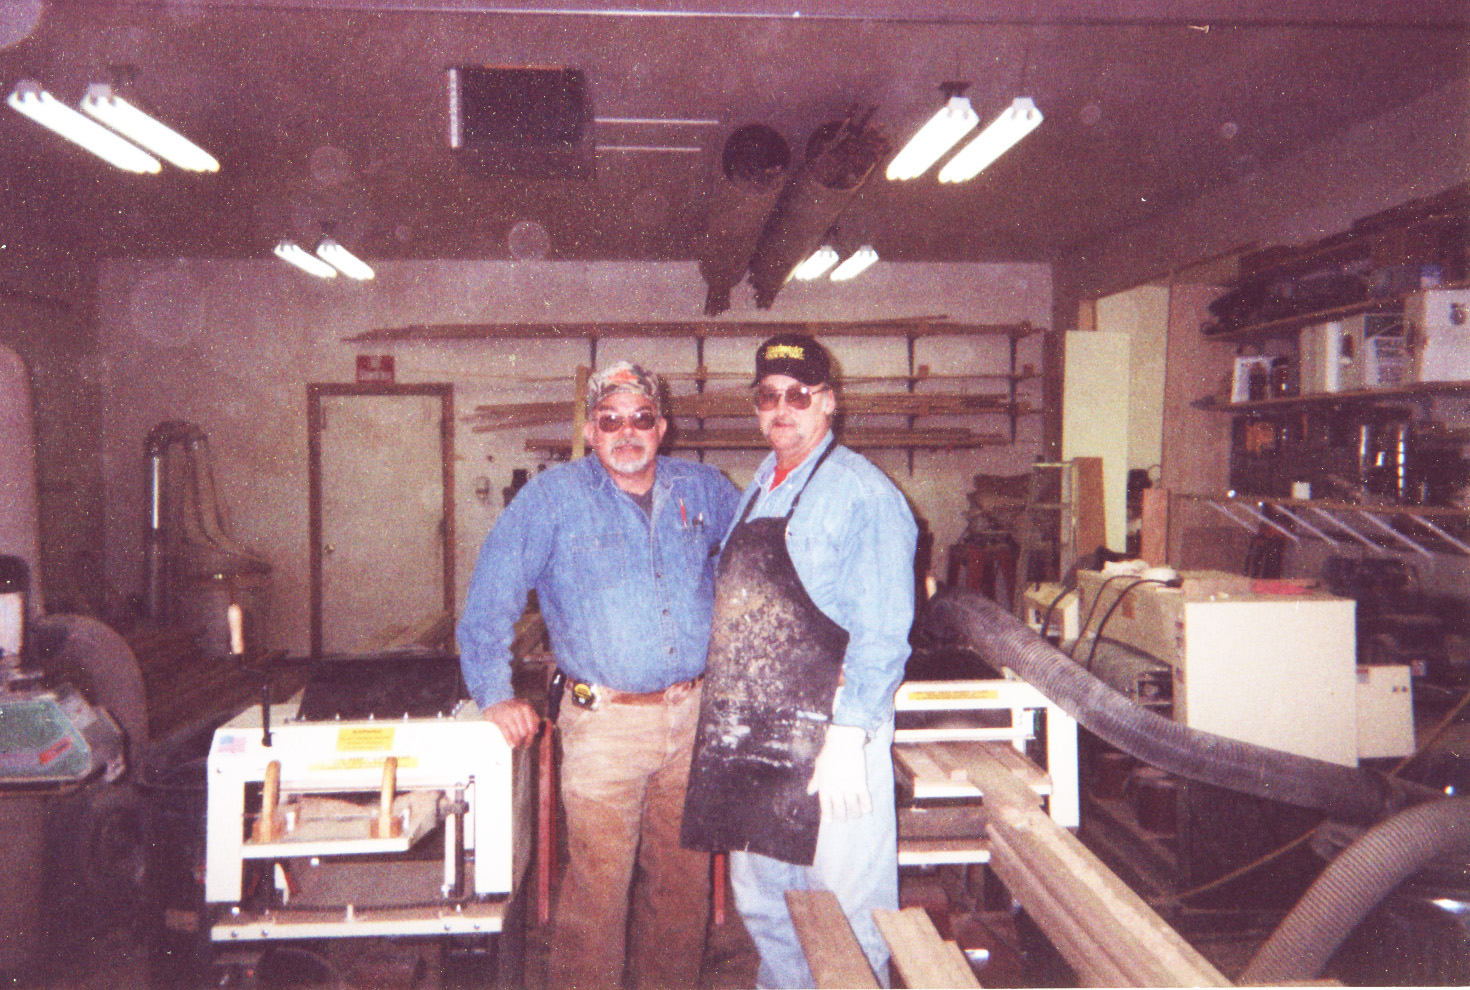 """Our two families are making a good living,"" says James Tolley of South Dakota. ""My partner and I own 5 Woodmaster Molder/Planers. One's set up for planing, one for curved molding, and the others for straight molding. We do a lot of custom woodworking and millwork manufacturing."""